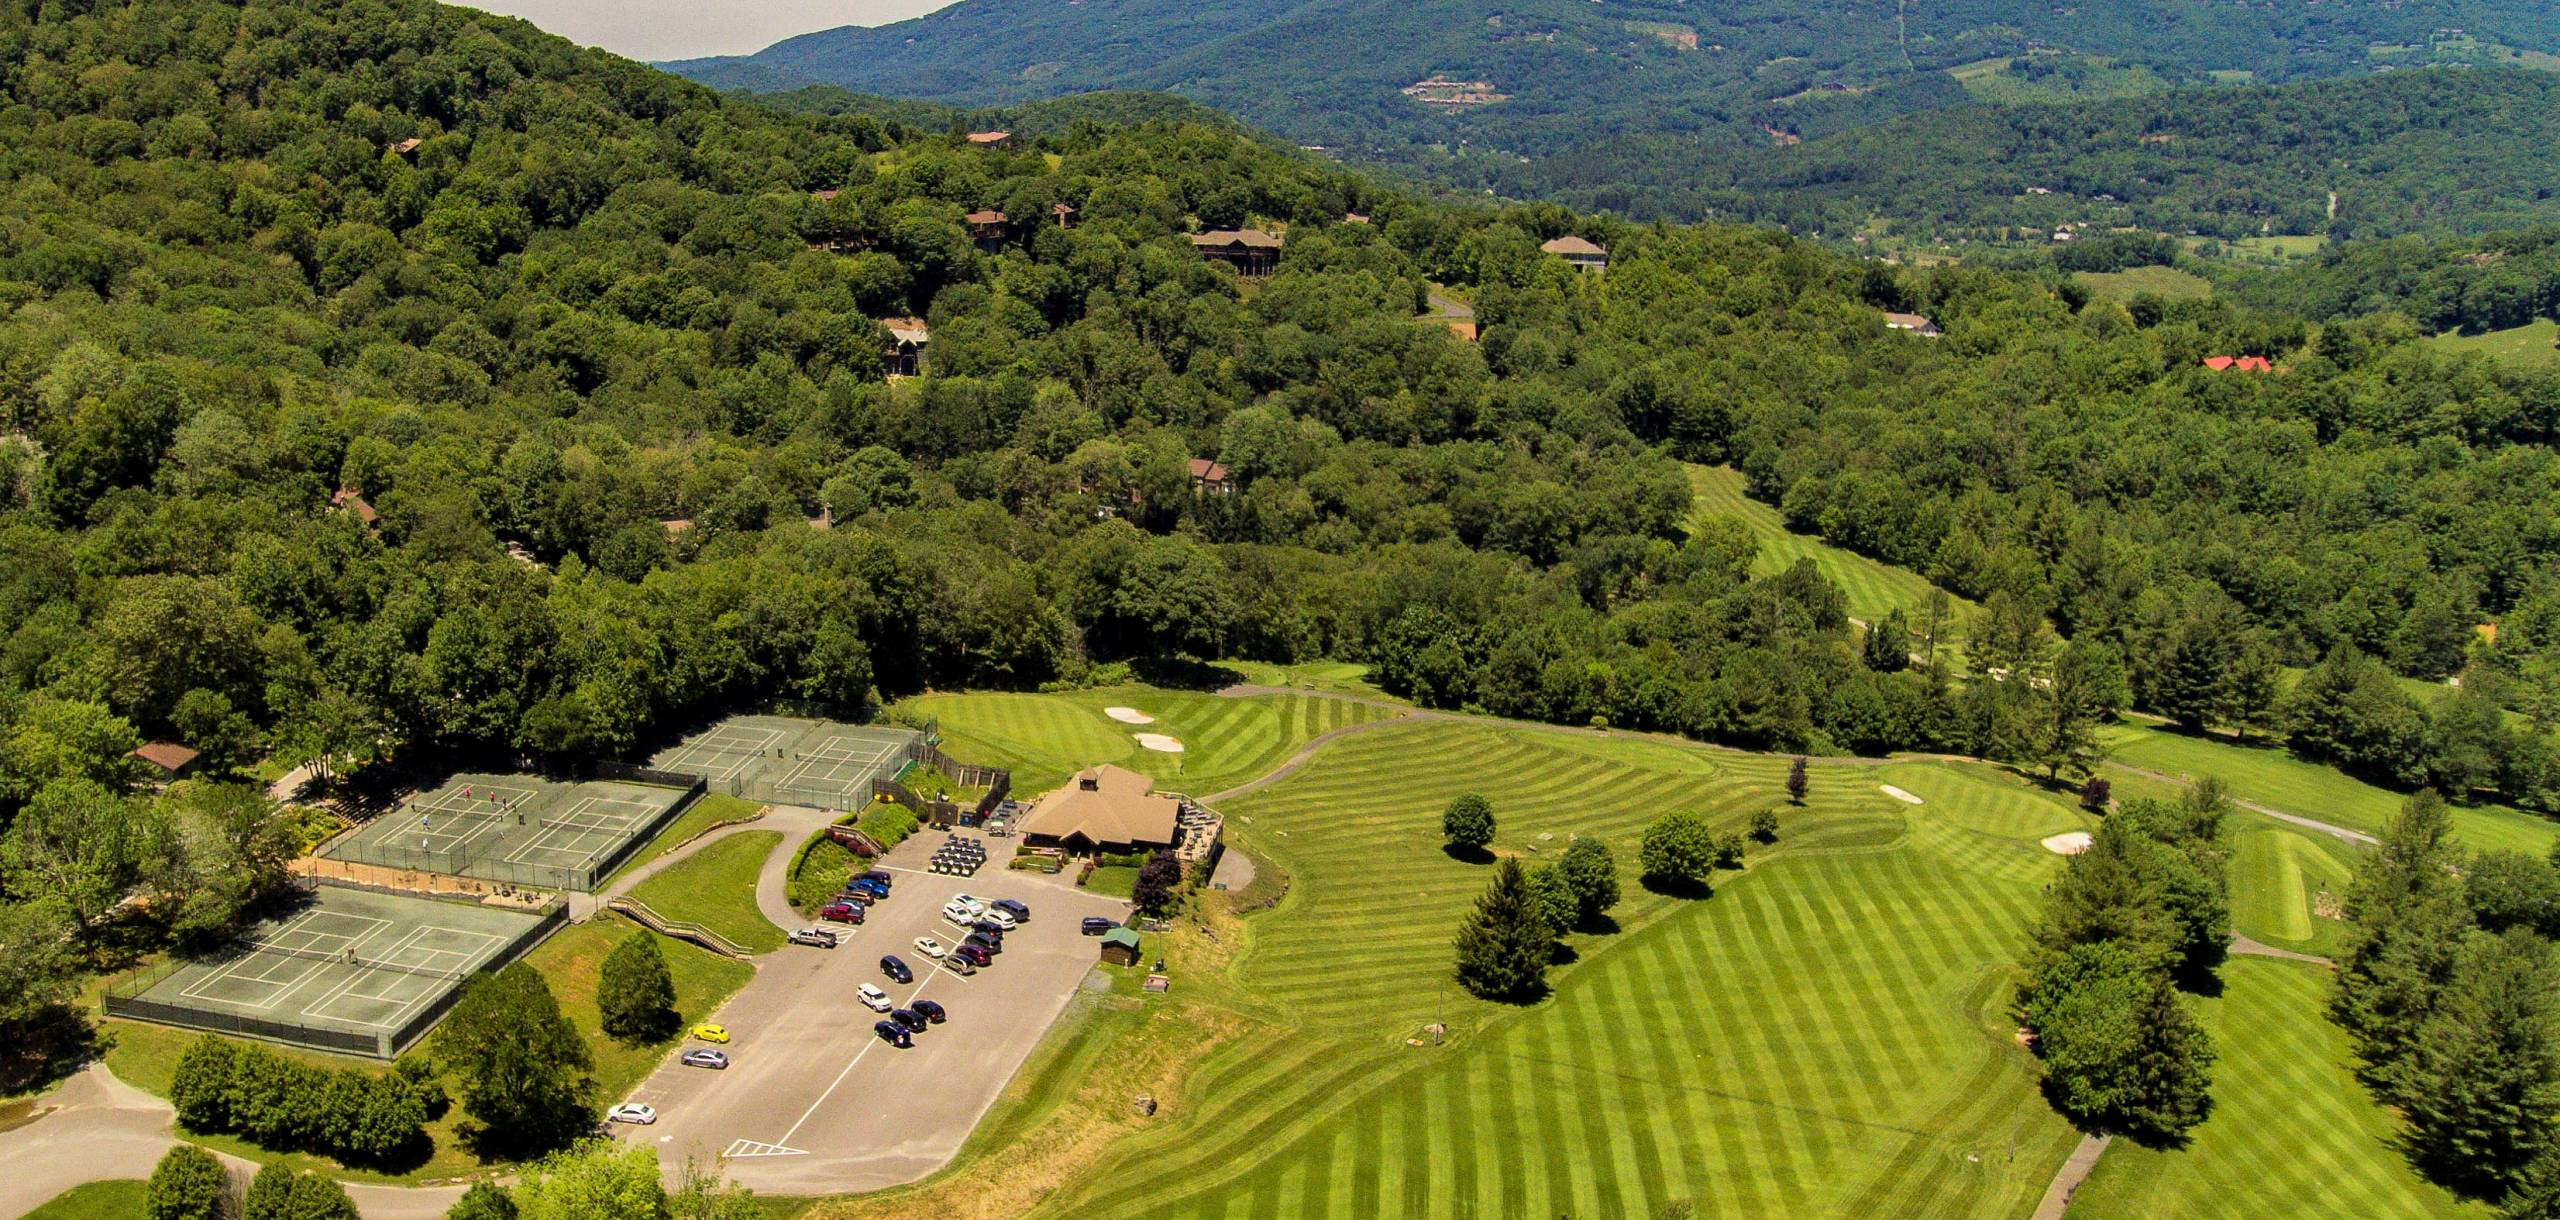 Amazing Golf course right in the middle of Sugar Mountain